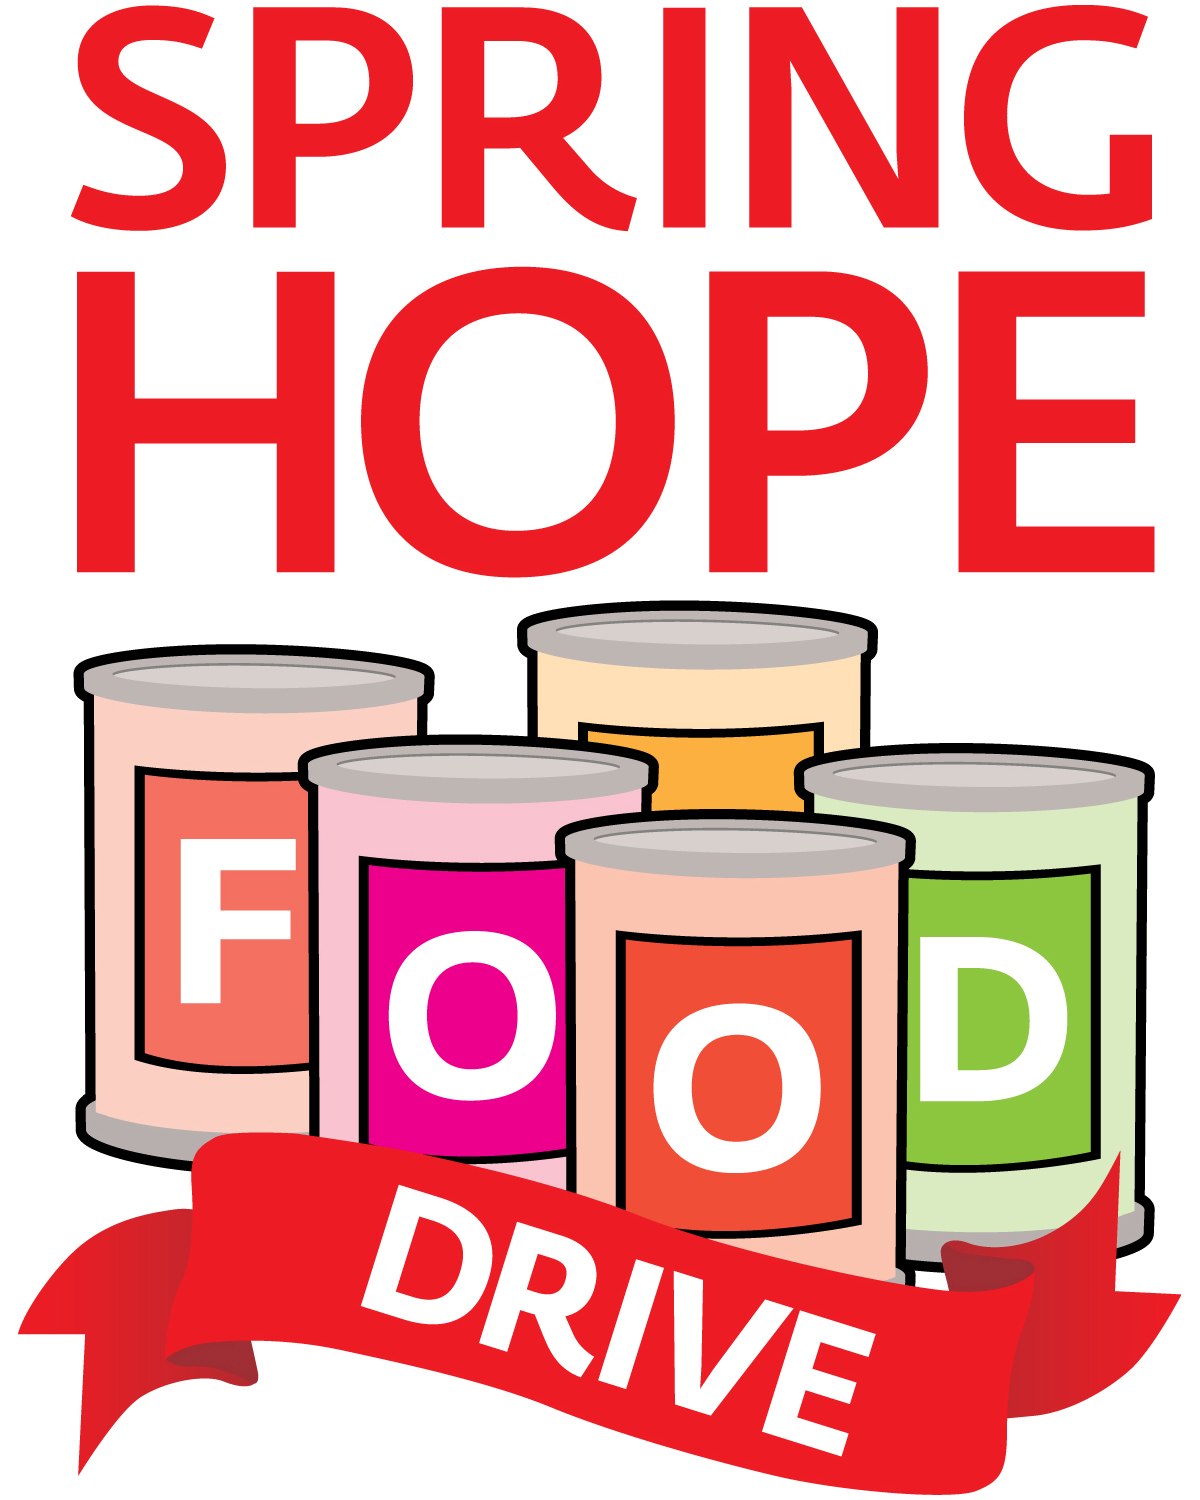 Food bank drive thank you clipart svg library 2017 GTAA Spring H.O.P.E. Food Drive - Daily Bread Food Bank svg library